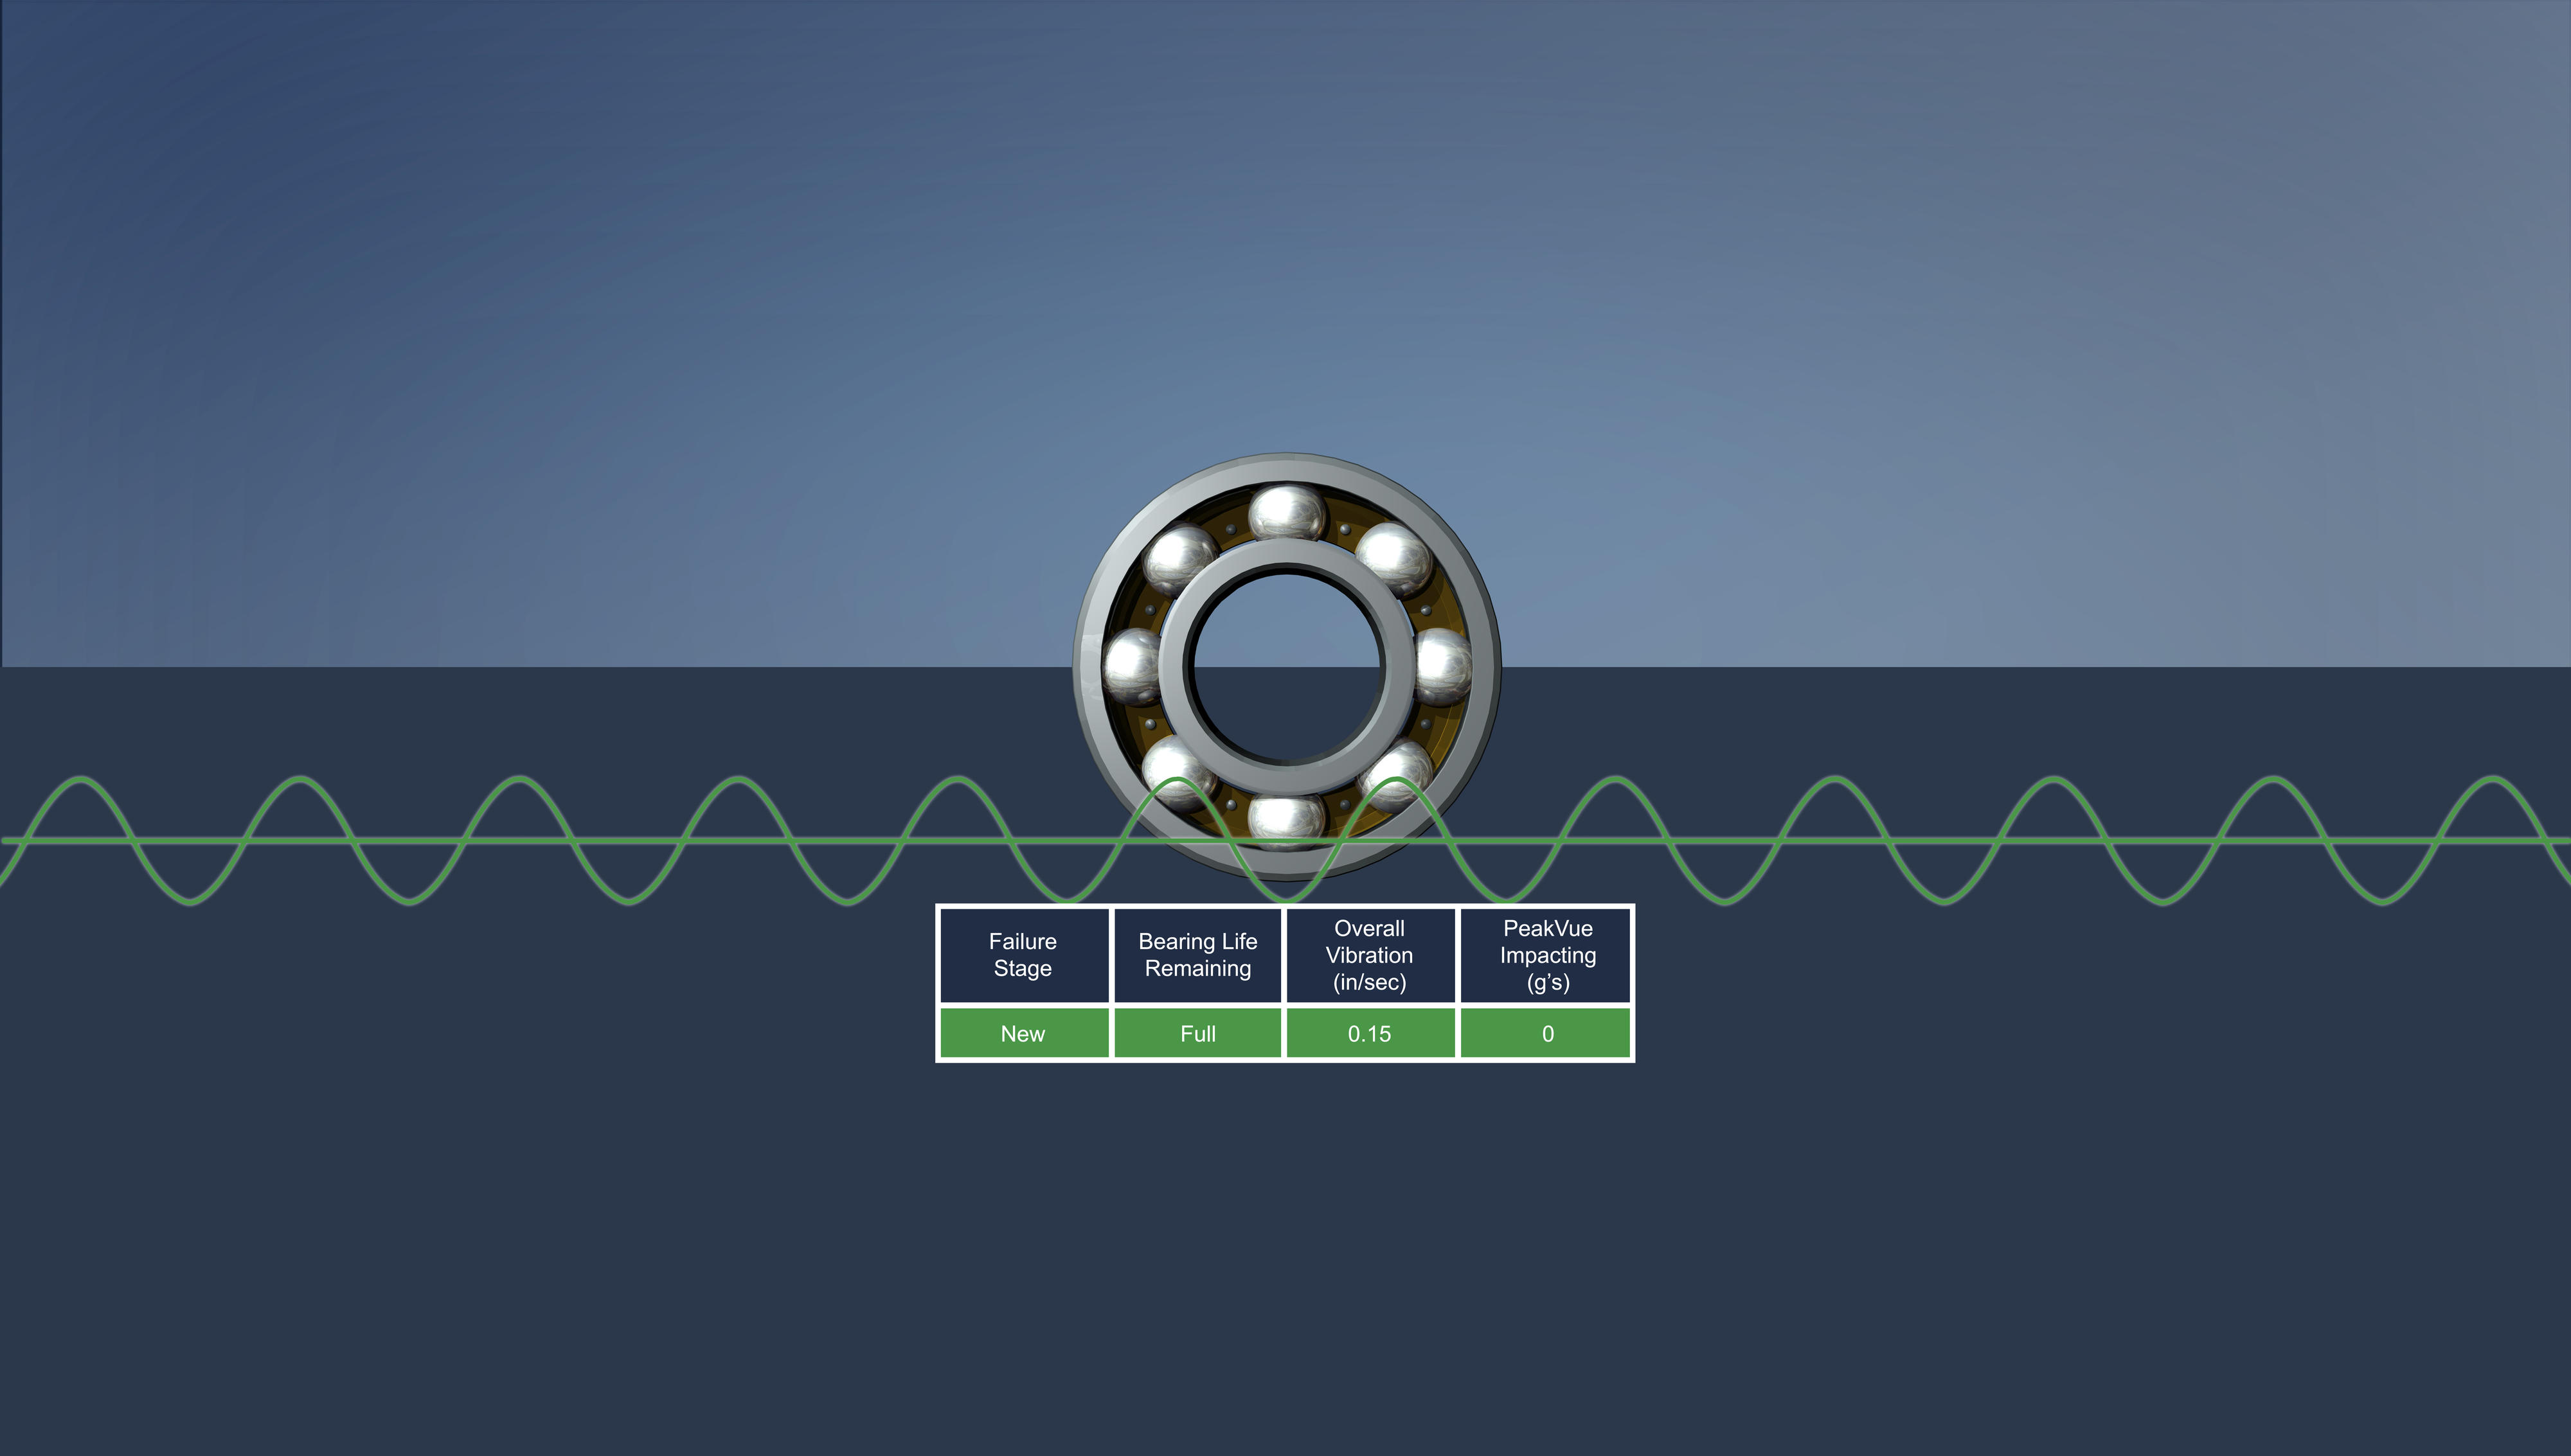 PeakVue Technology for Machinery Analysis | Emerson DK DK